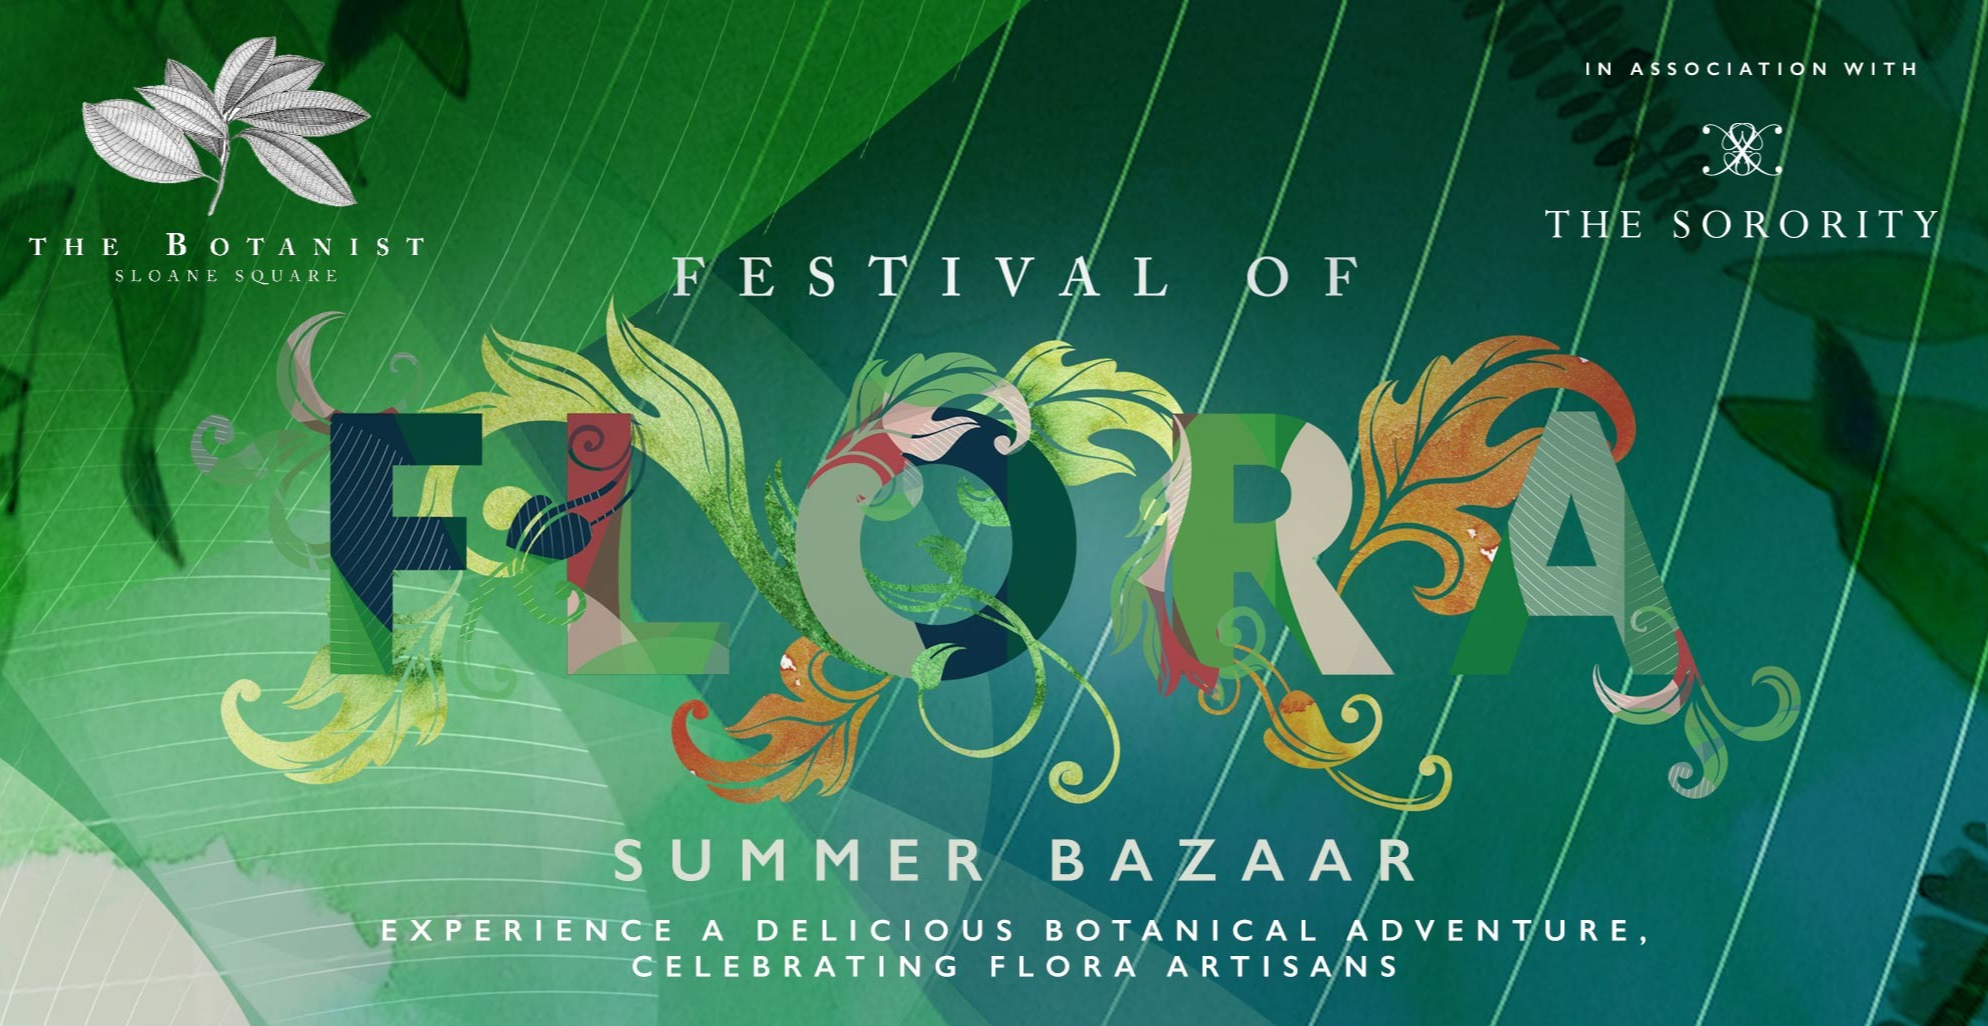 Festival of Flora Summer Bazaar in association with The Sorority